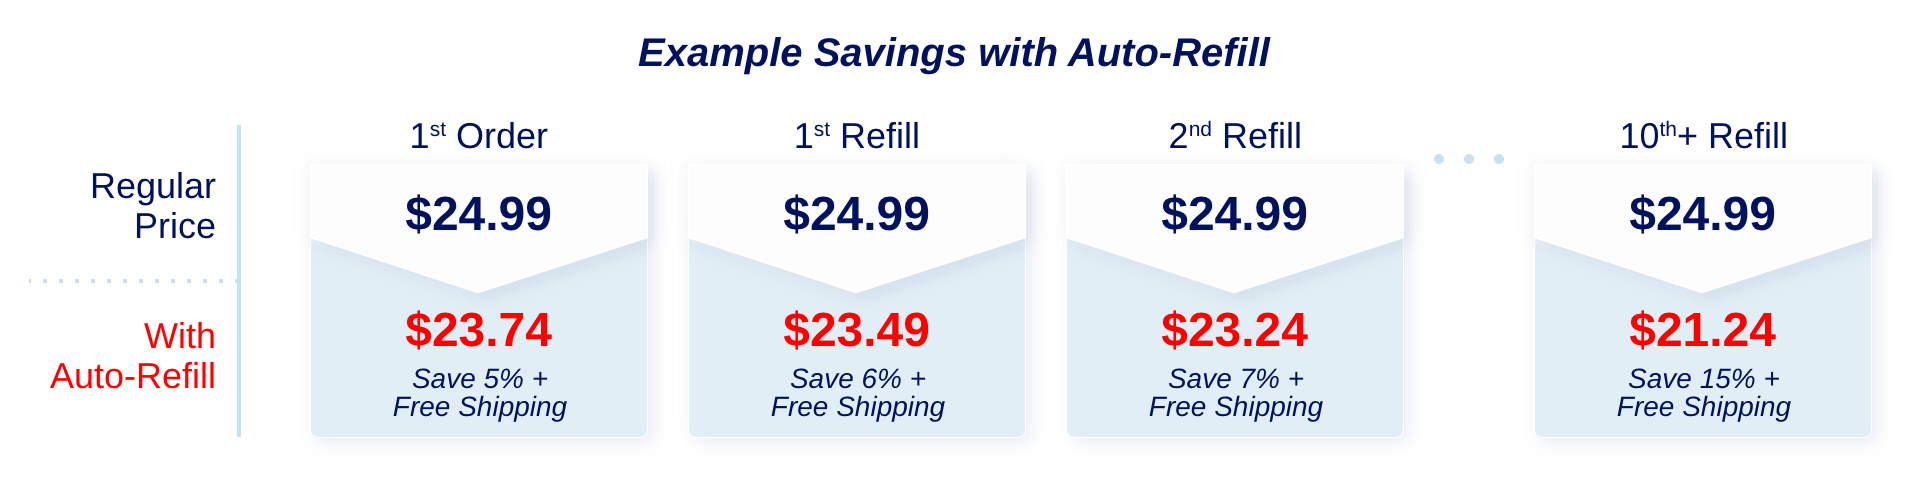 Save up to 15% and Free Shipping on every Auto-Refill order